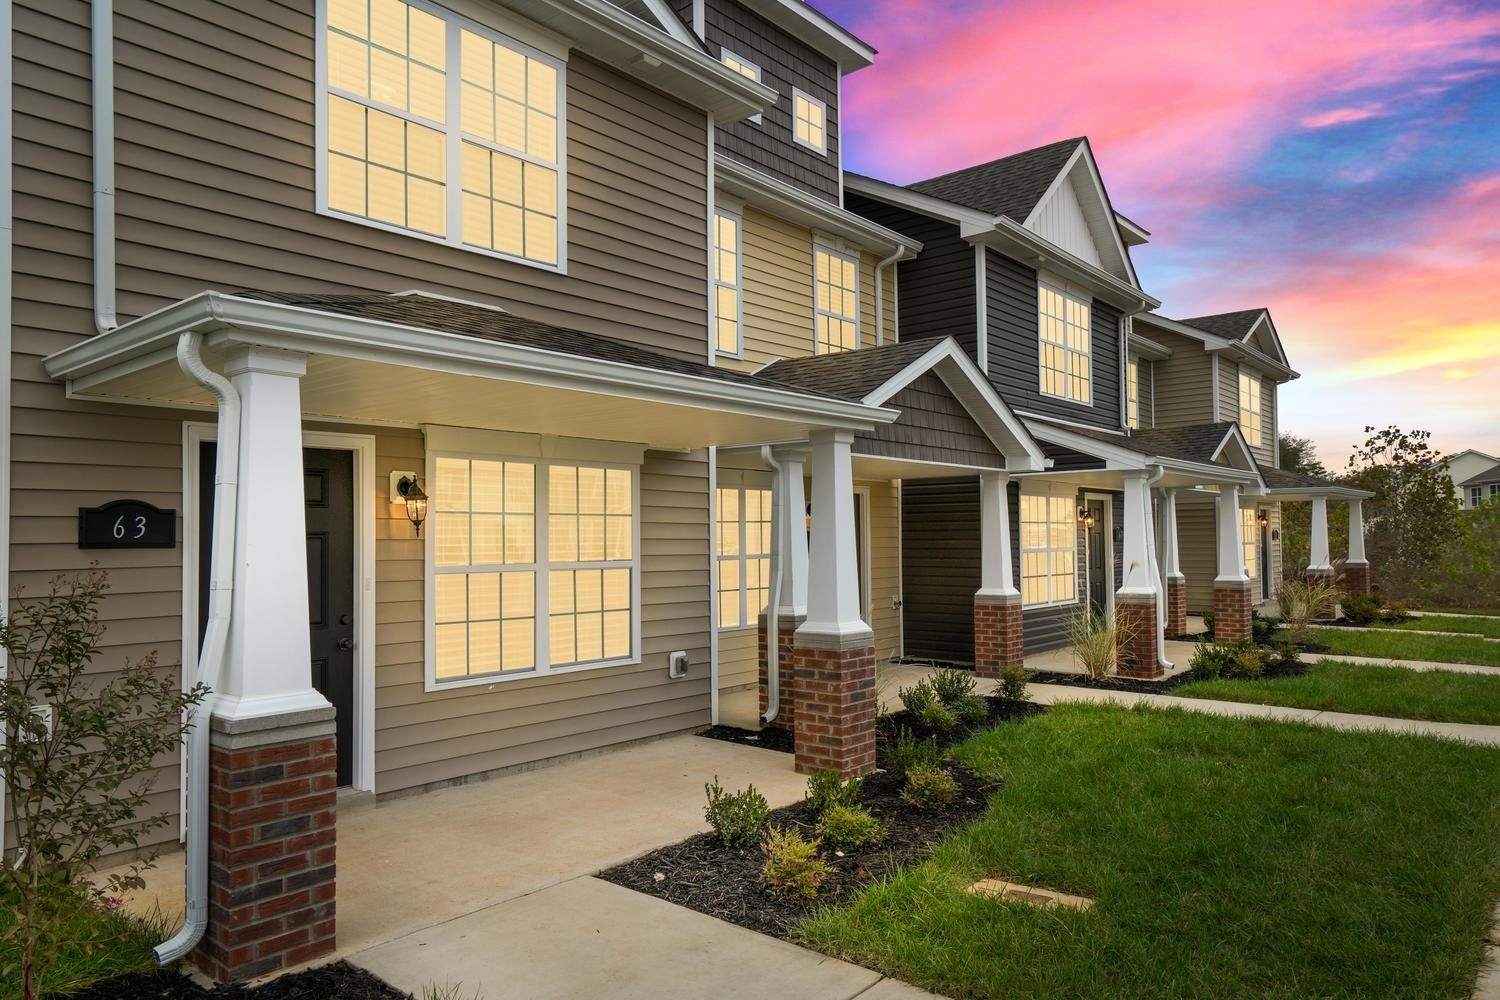 Check Out This Amazing townhome located close to Tennova Healthcare & Zoned for Rossview - Stainless Steel Appliances - Granite Counters in the Kitchen - LVT Floors Installed on Main Level - Community Clubhouse & Pool